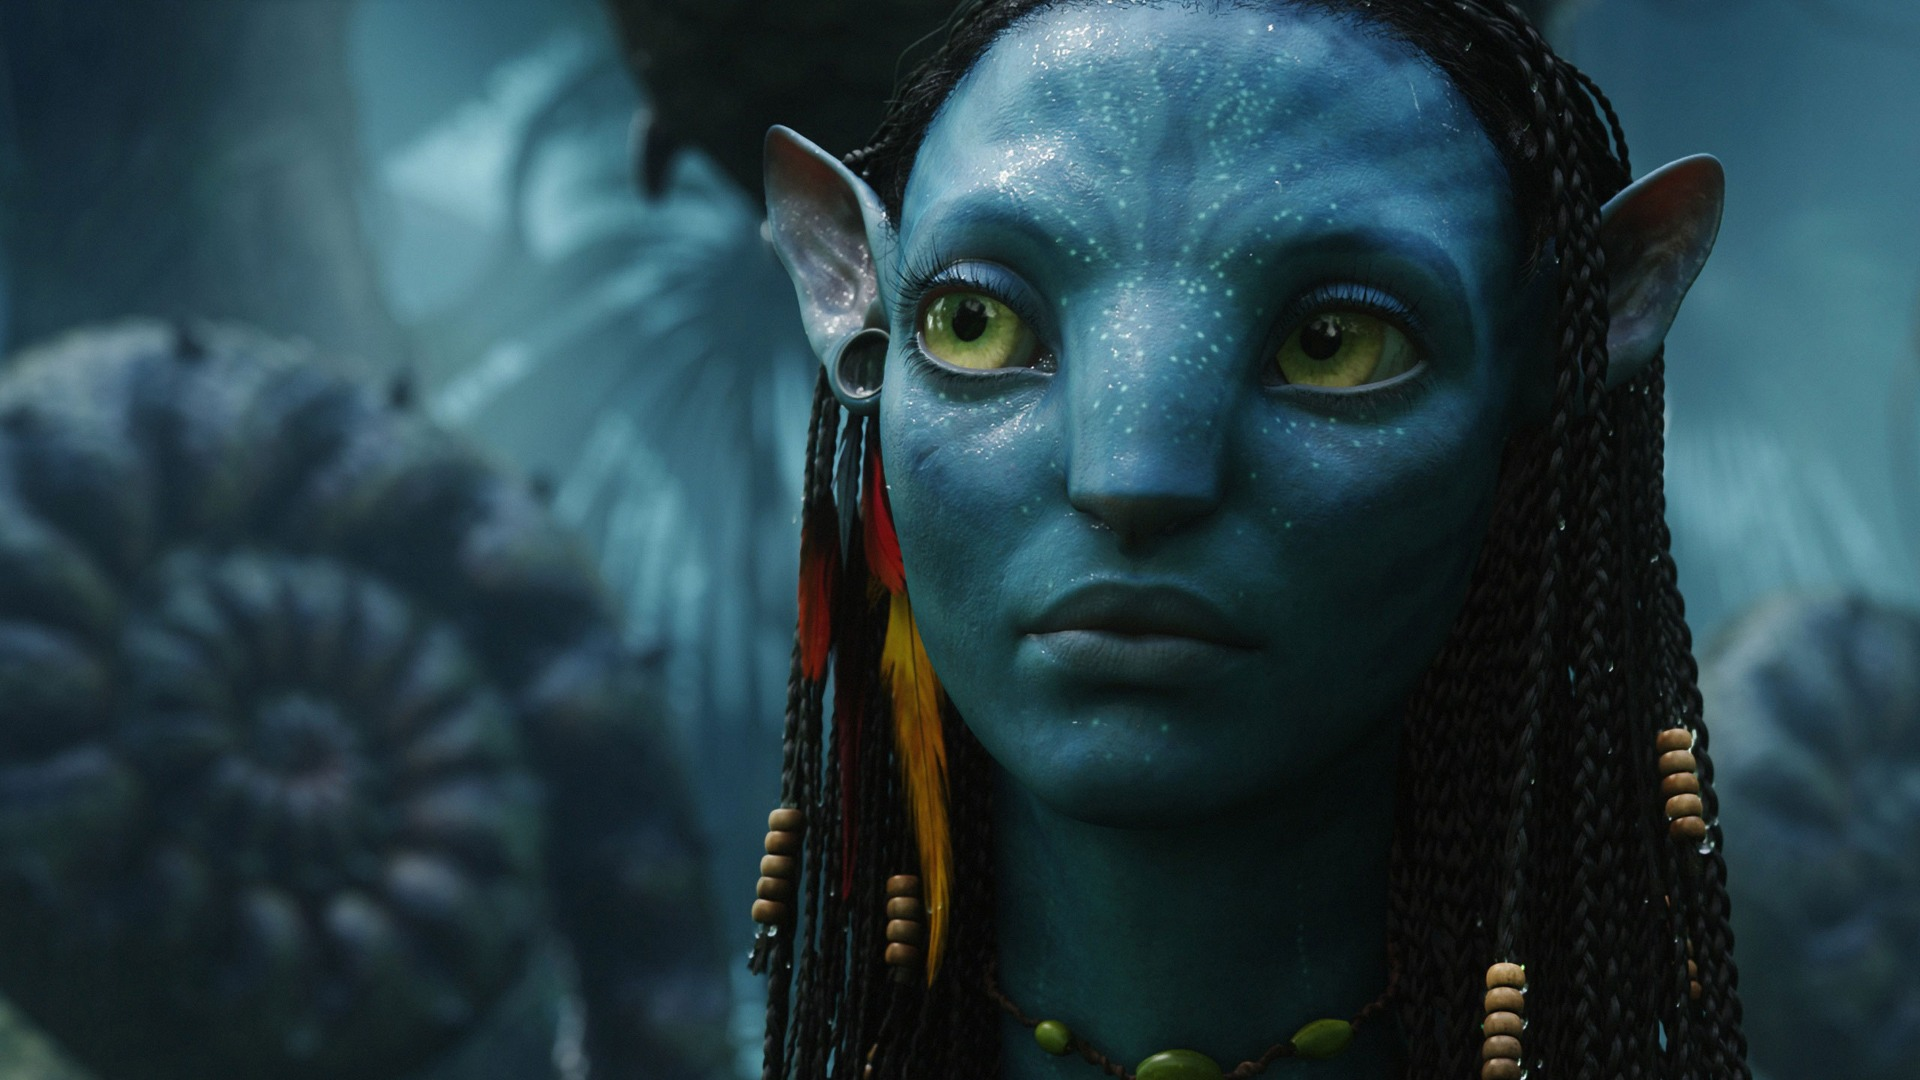 Avatar HD Wallpaper | 1920x1080 | ID:29527